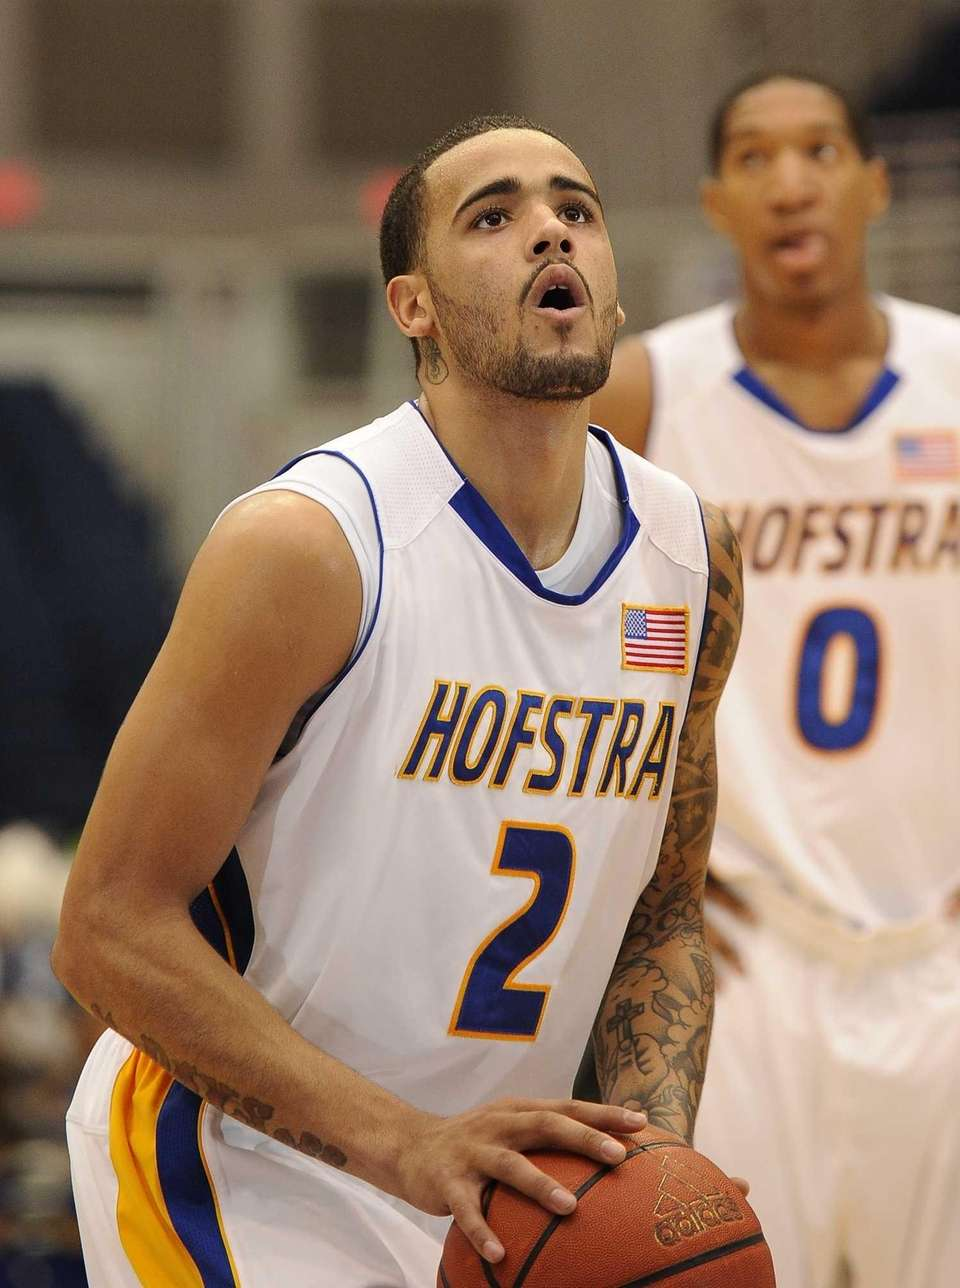 Hofstra guard Taran Buie sets up his foul